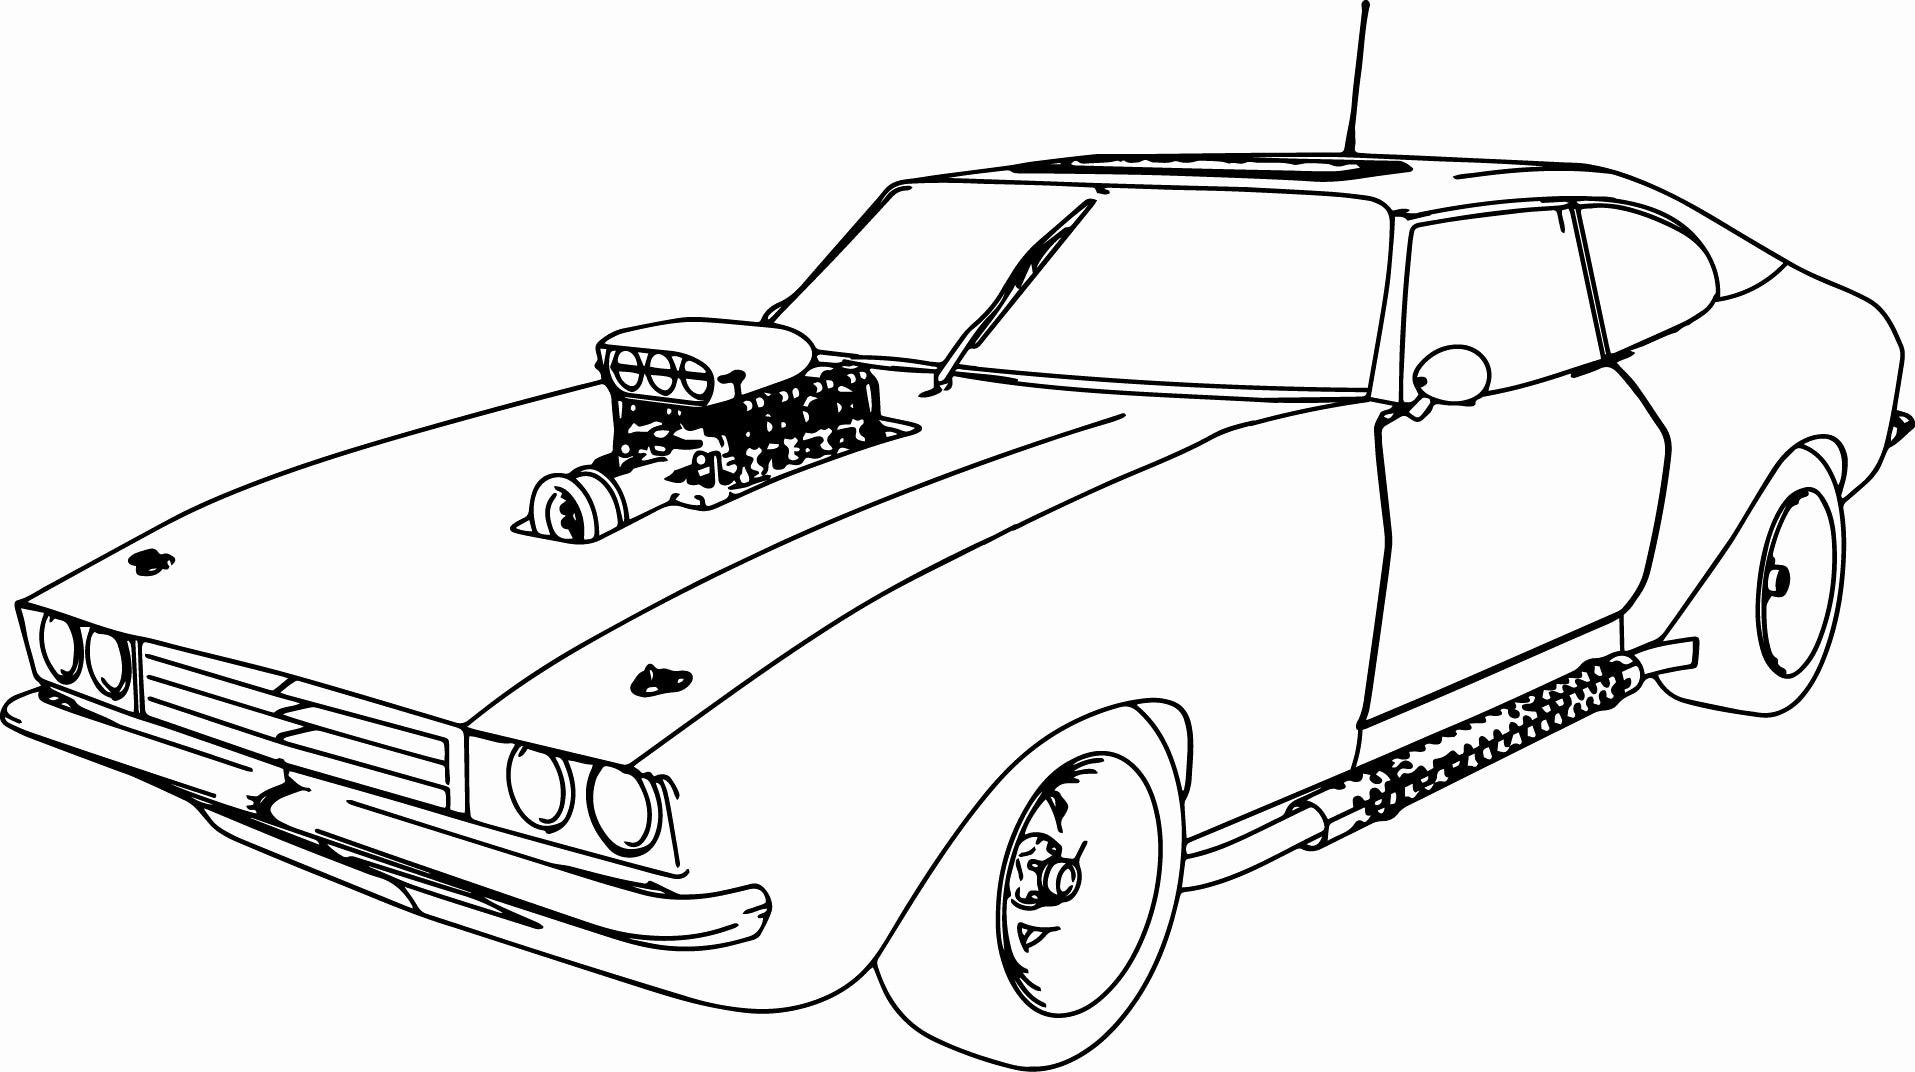 35+ Race car coloring pages easy ideas